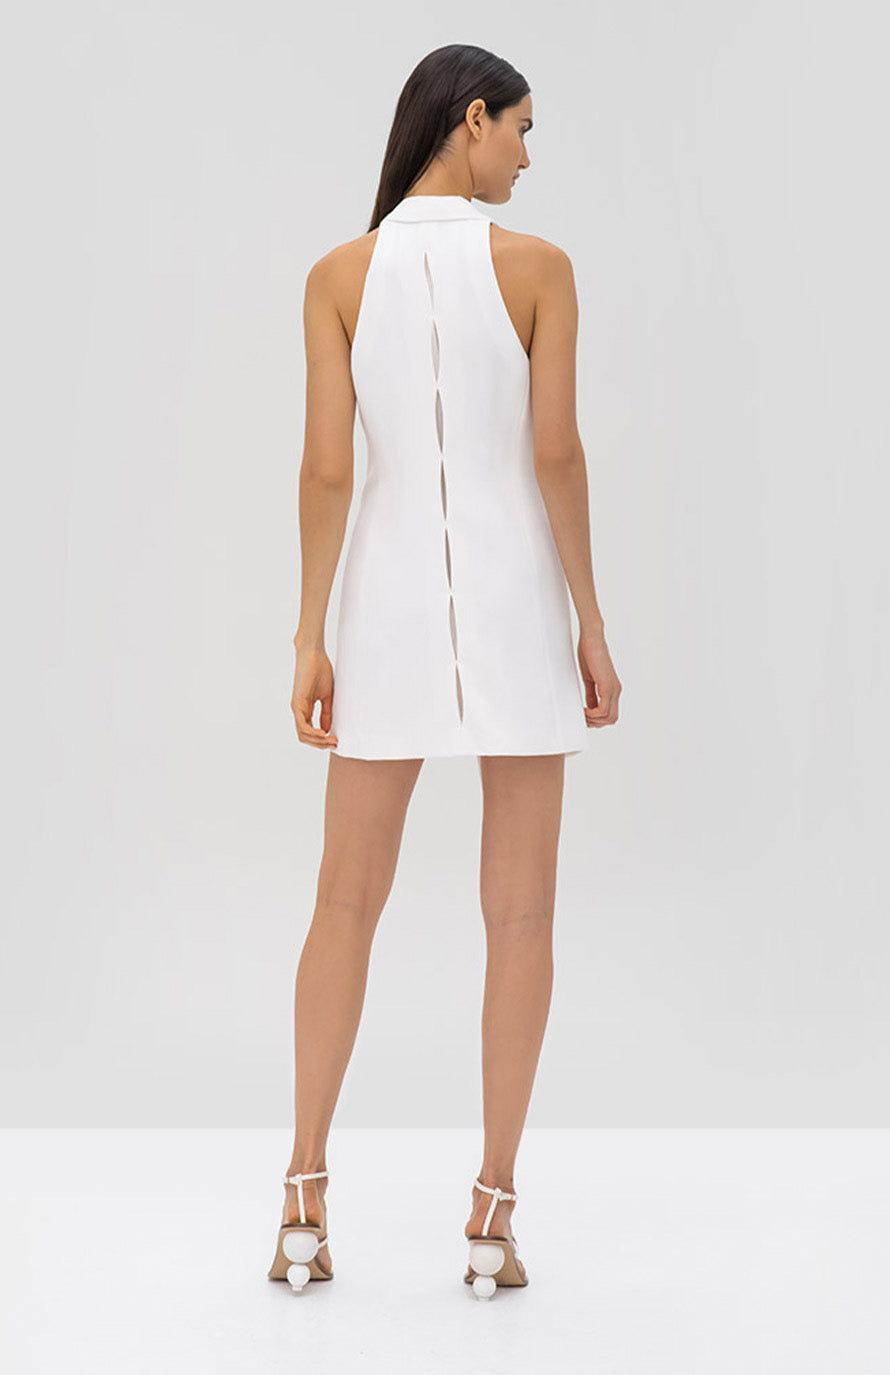 Alexis Tahlia Dress White - Rear View